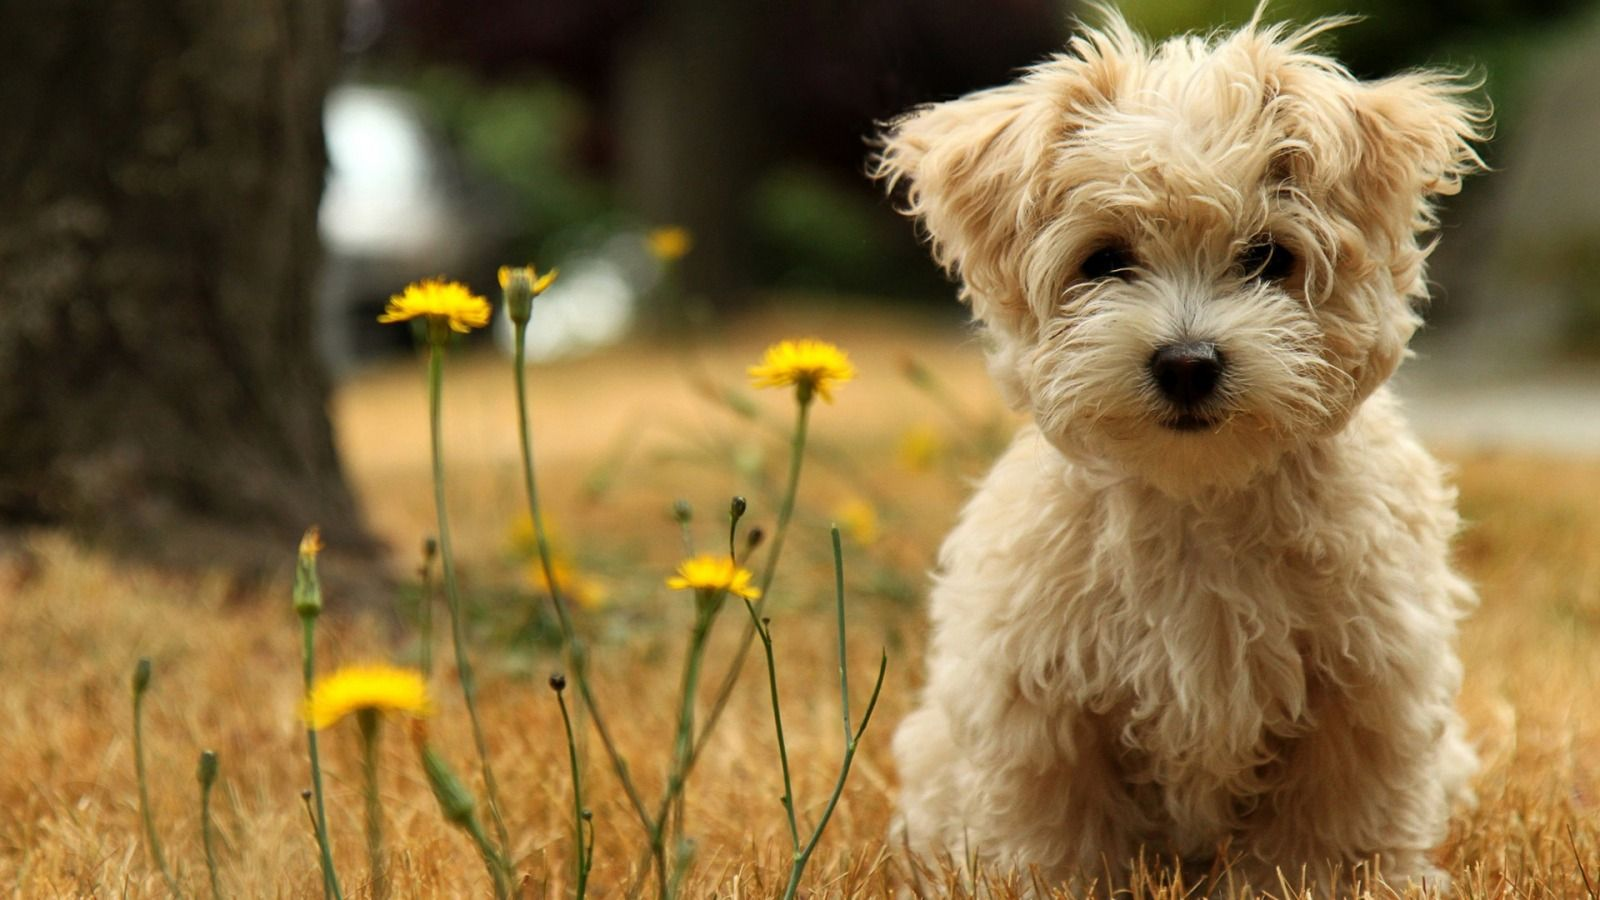 Cutest Dog Wallpaper